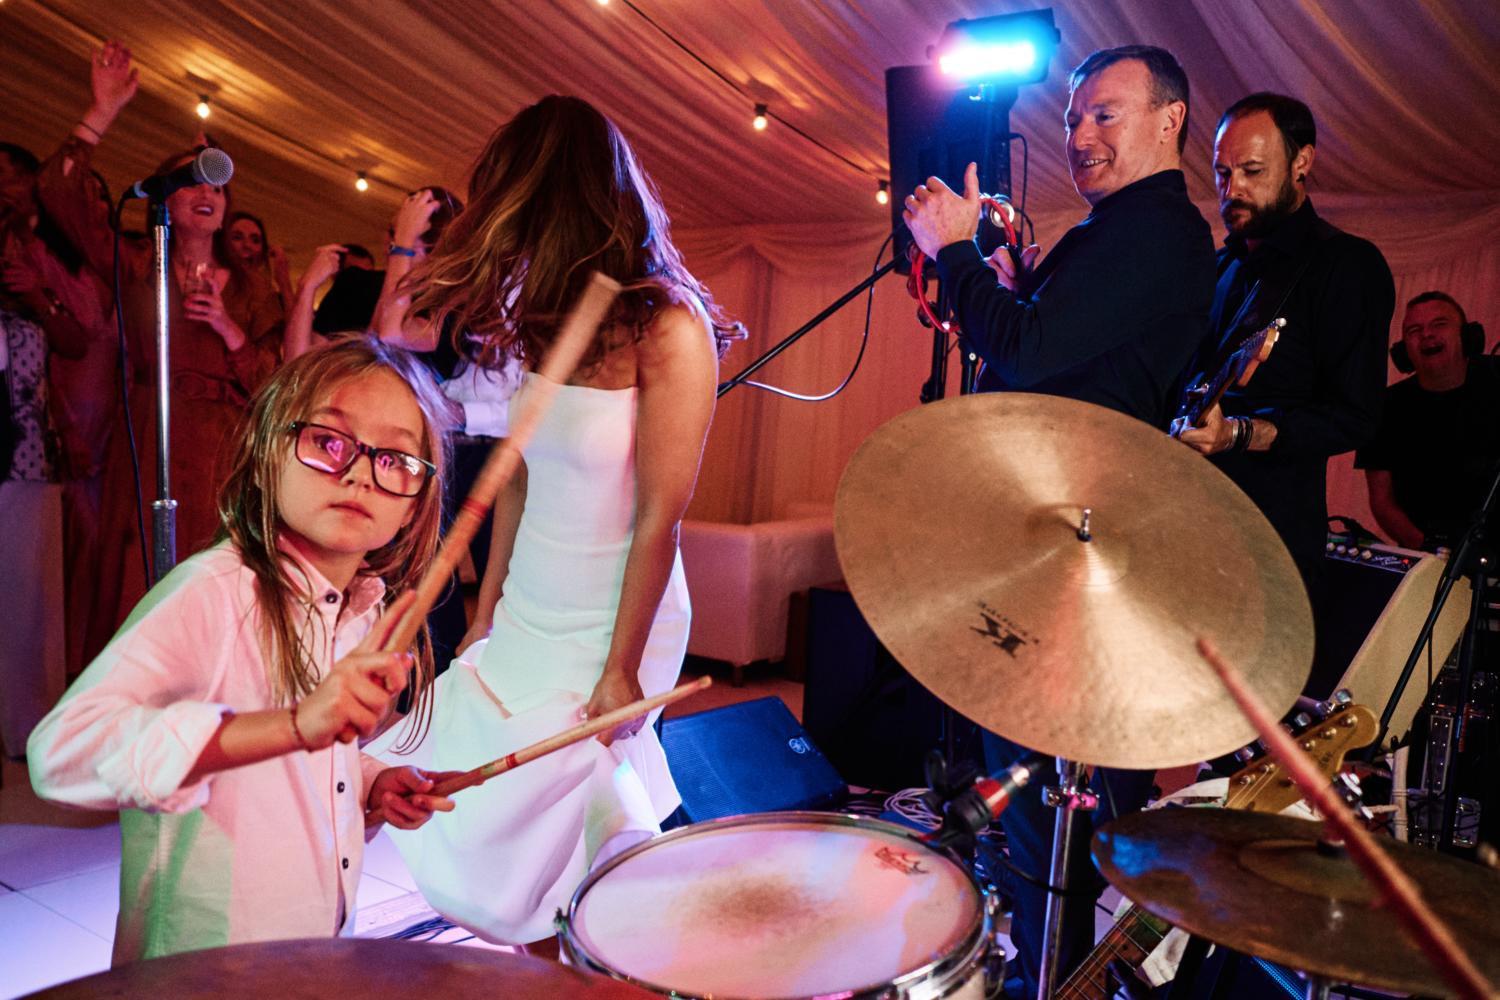 A child plays the drums at a wedding